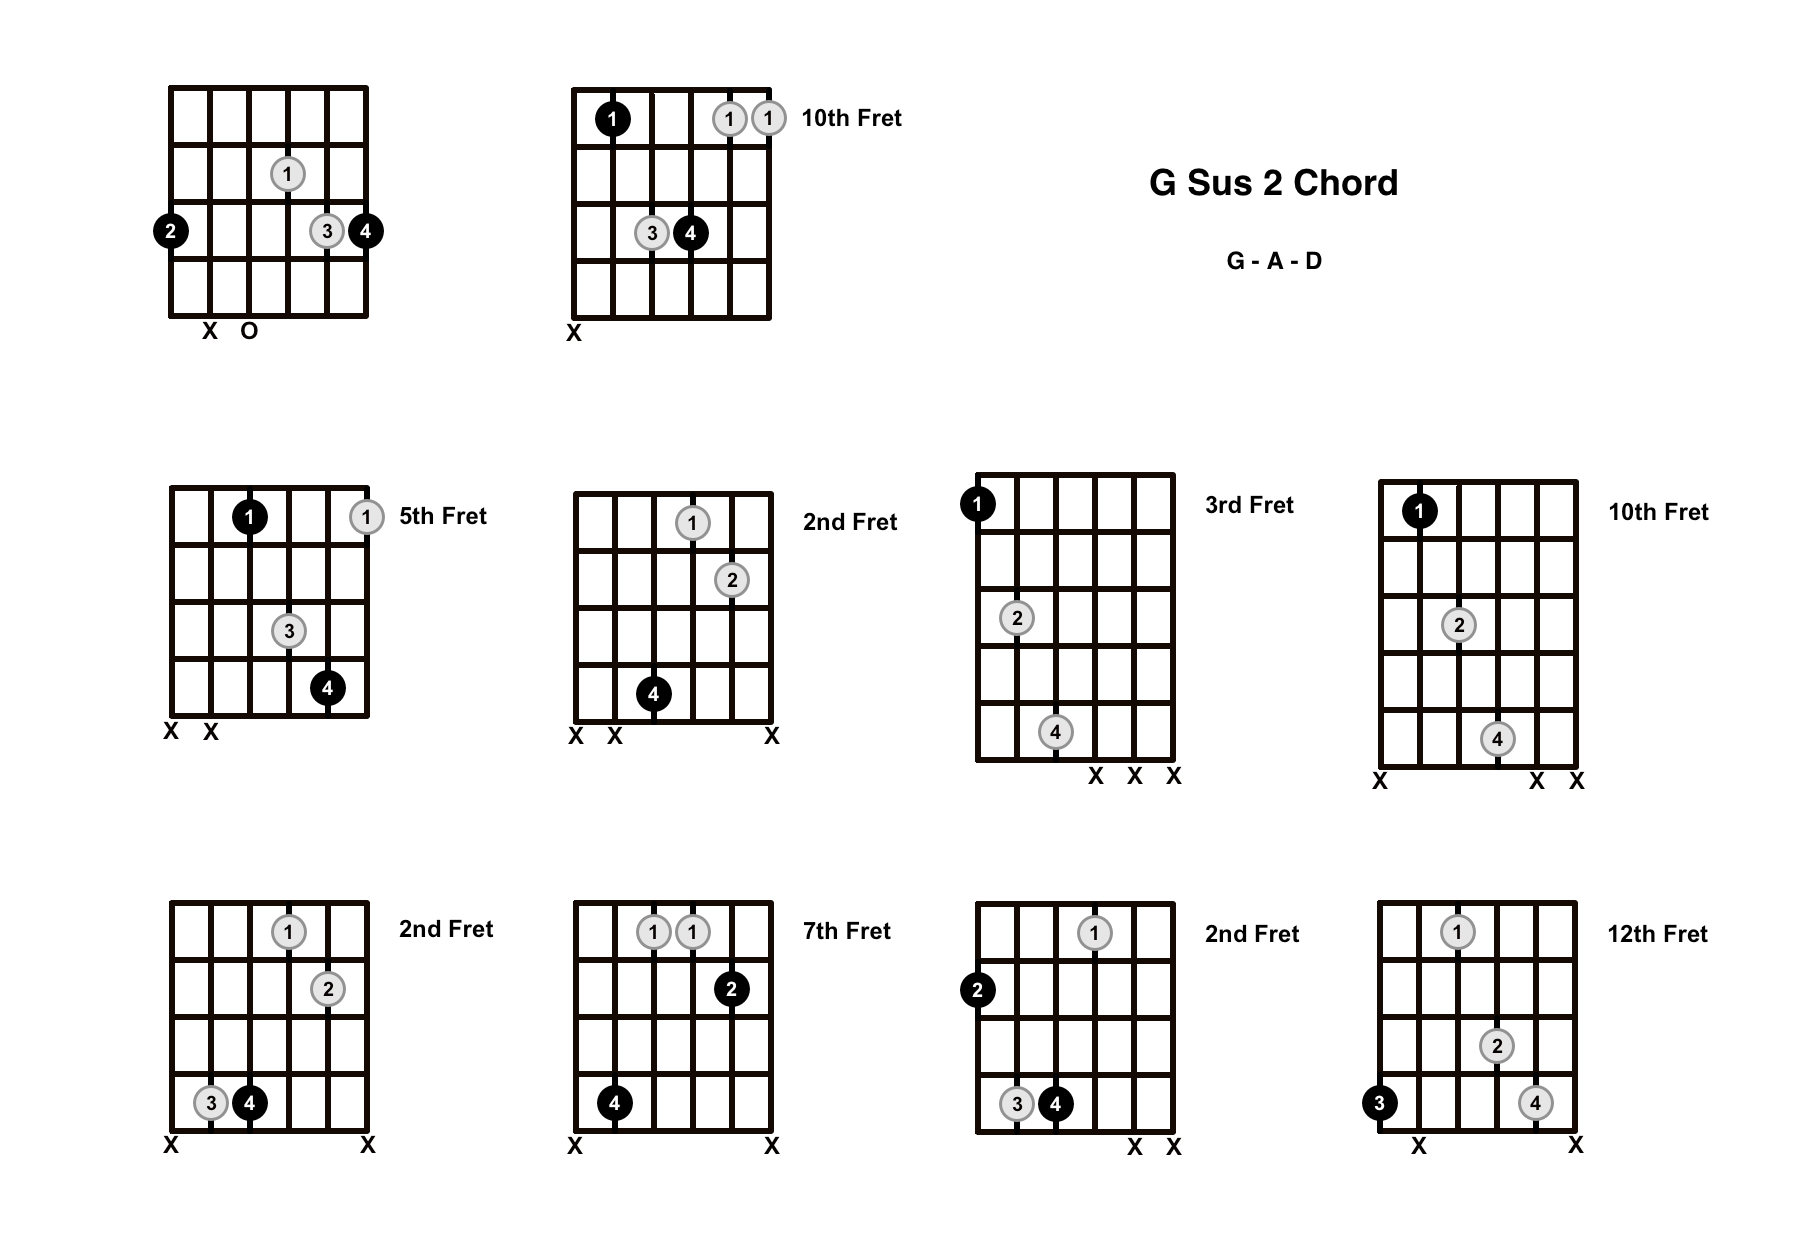 G Sus 2 Chord On The Guitar (G Suspended 2) – Diagrams, Finger Positions and Theory